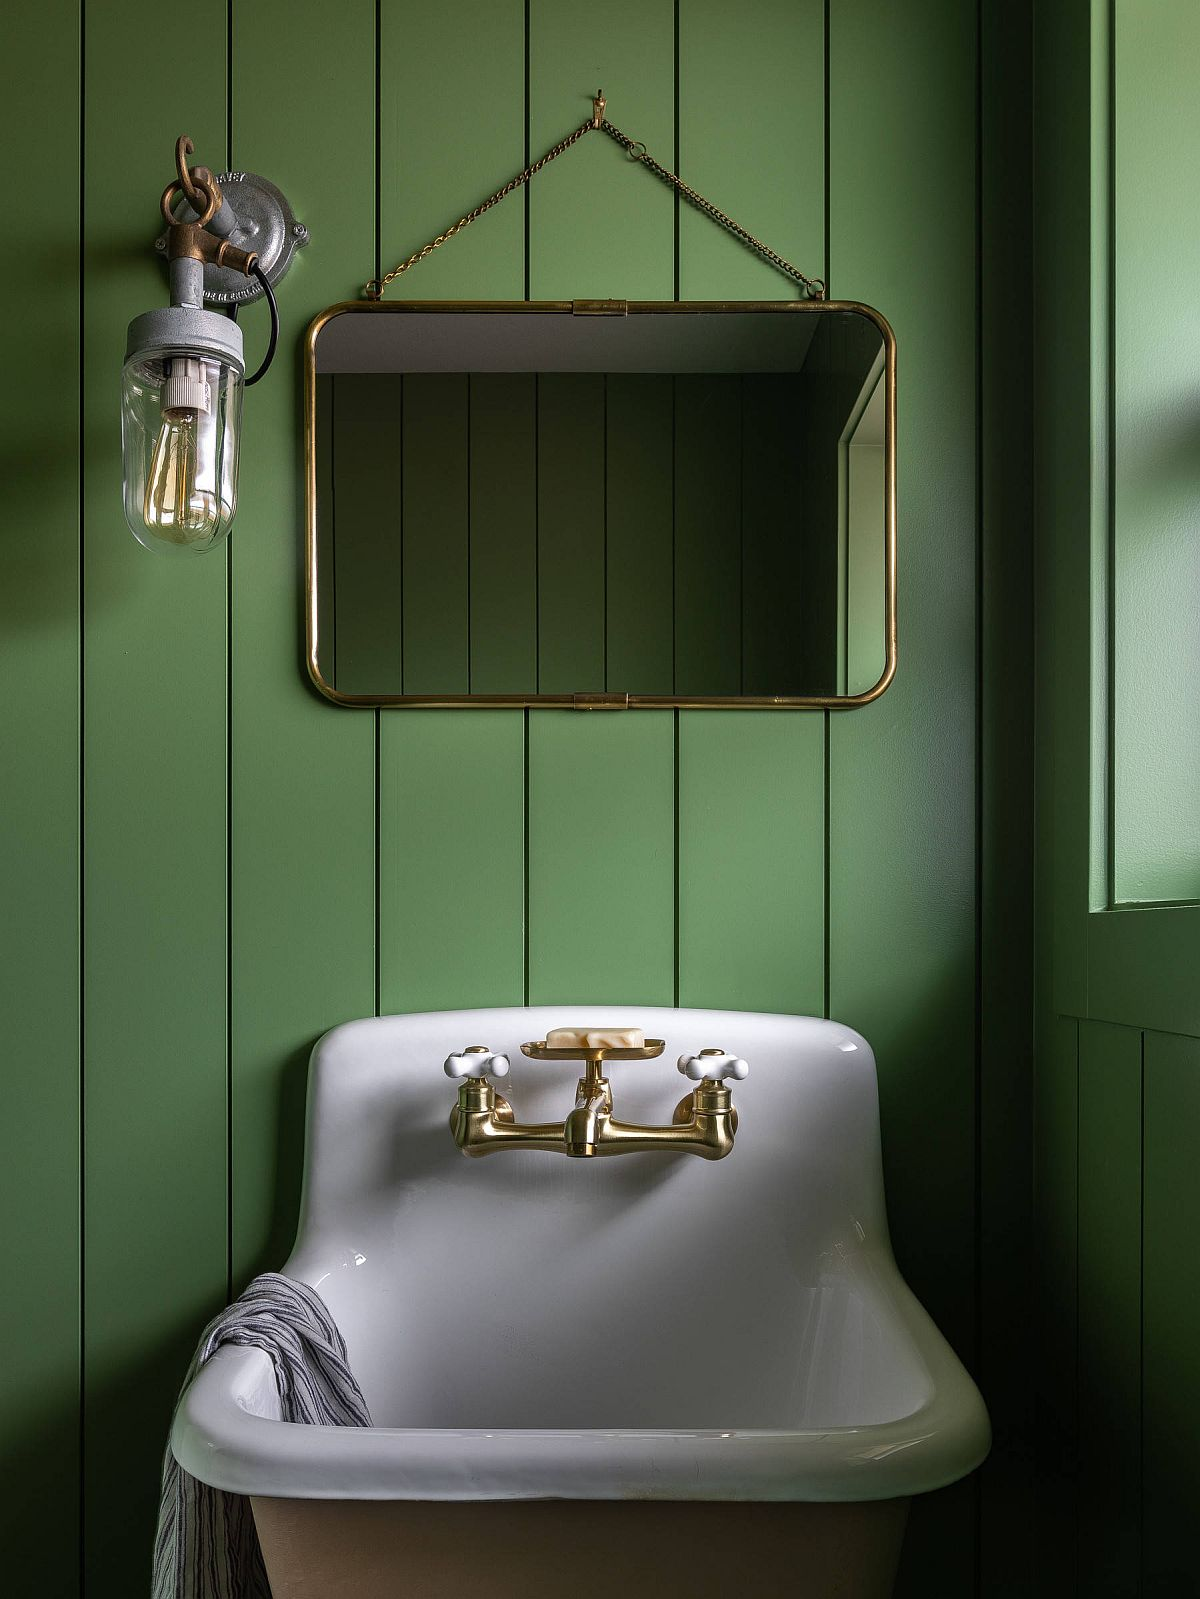 Cottage-style powder room with fabulous green walls and white sink